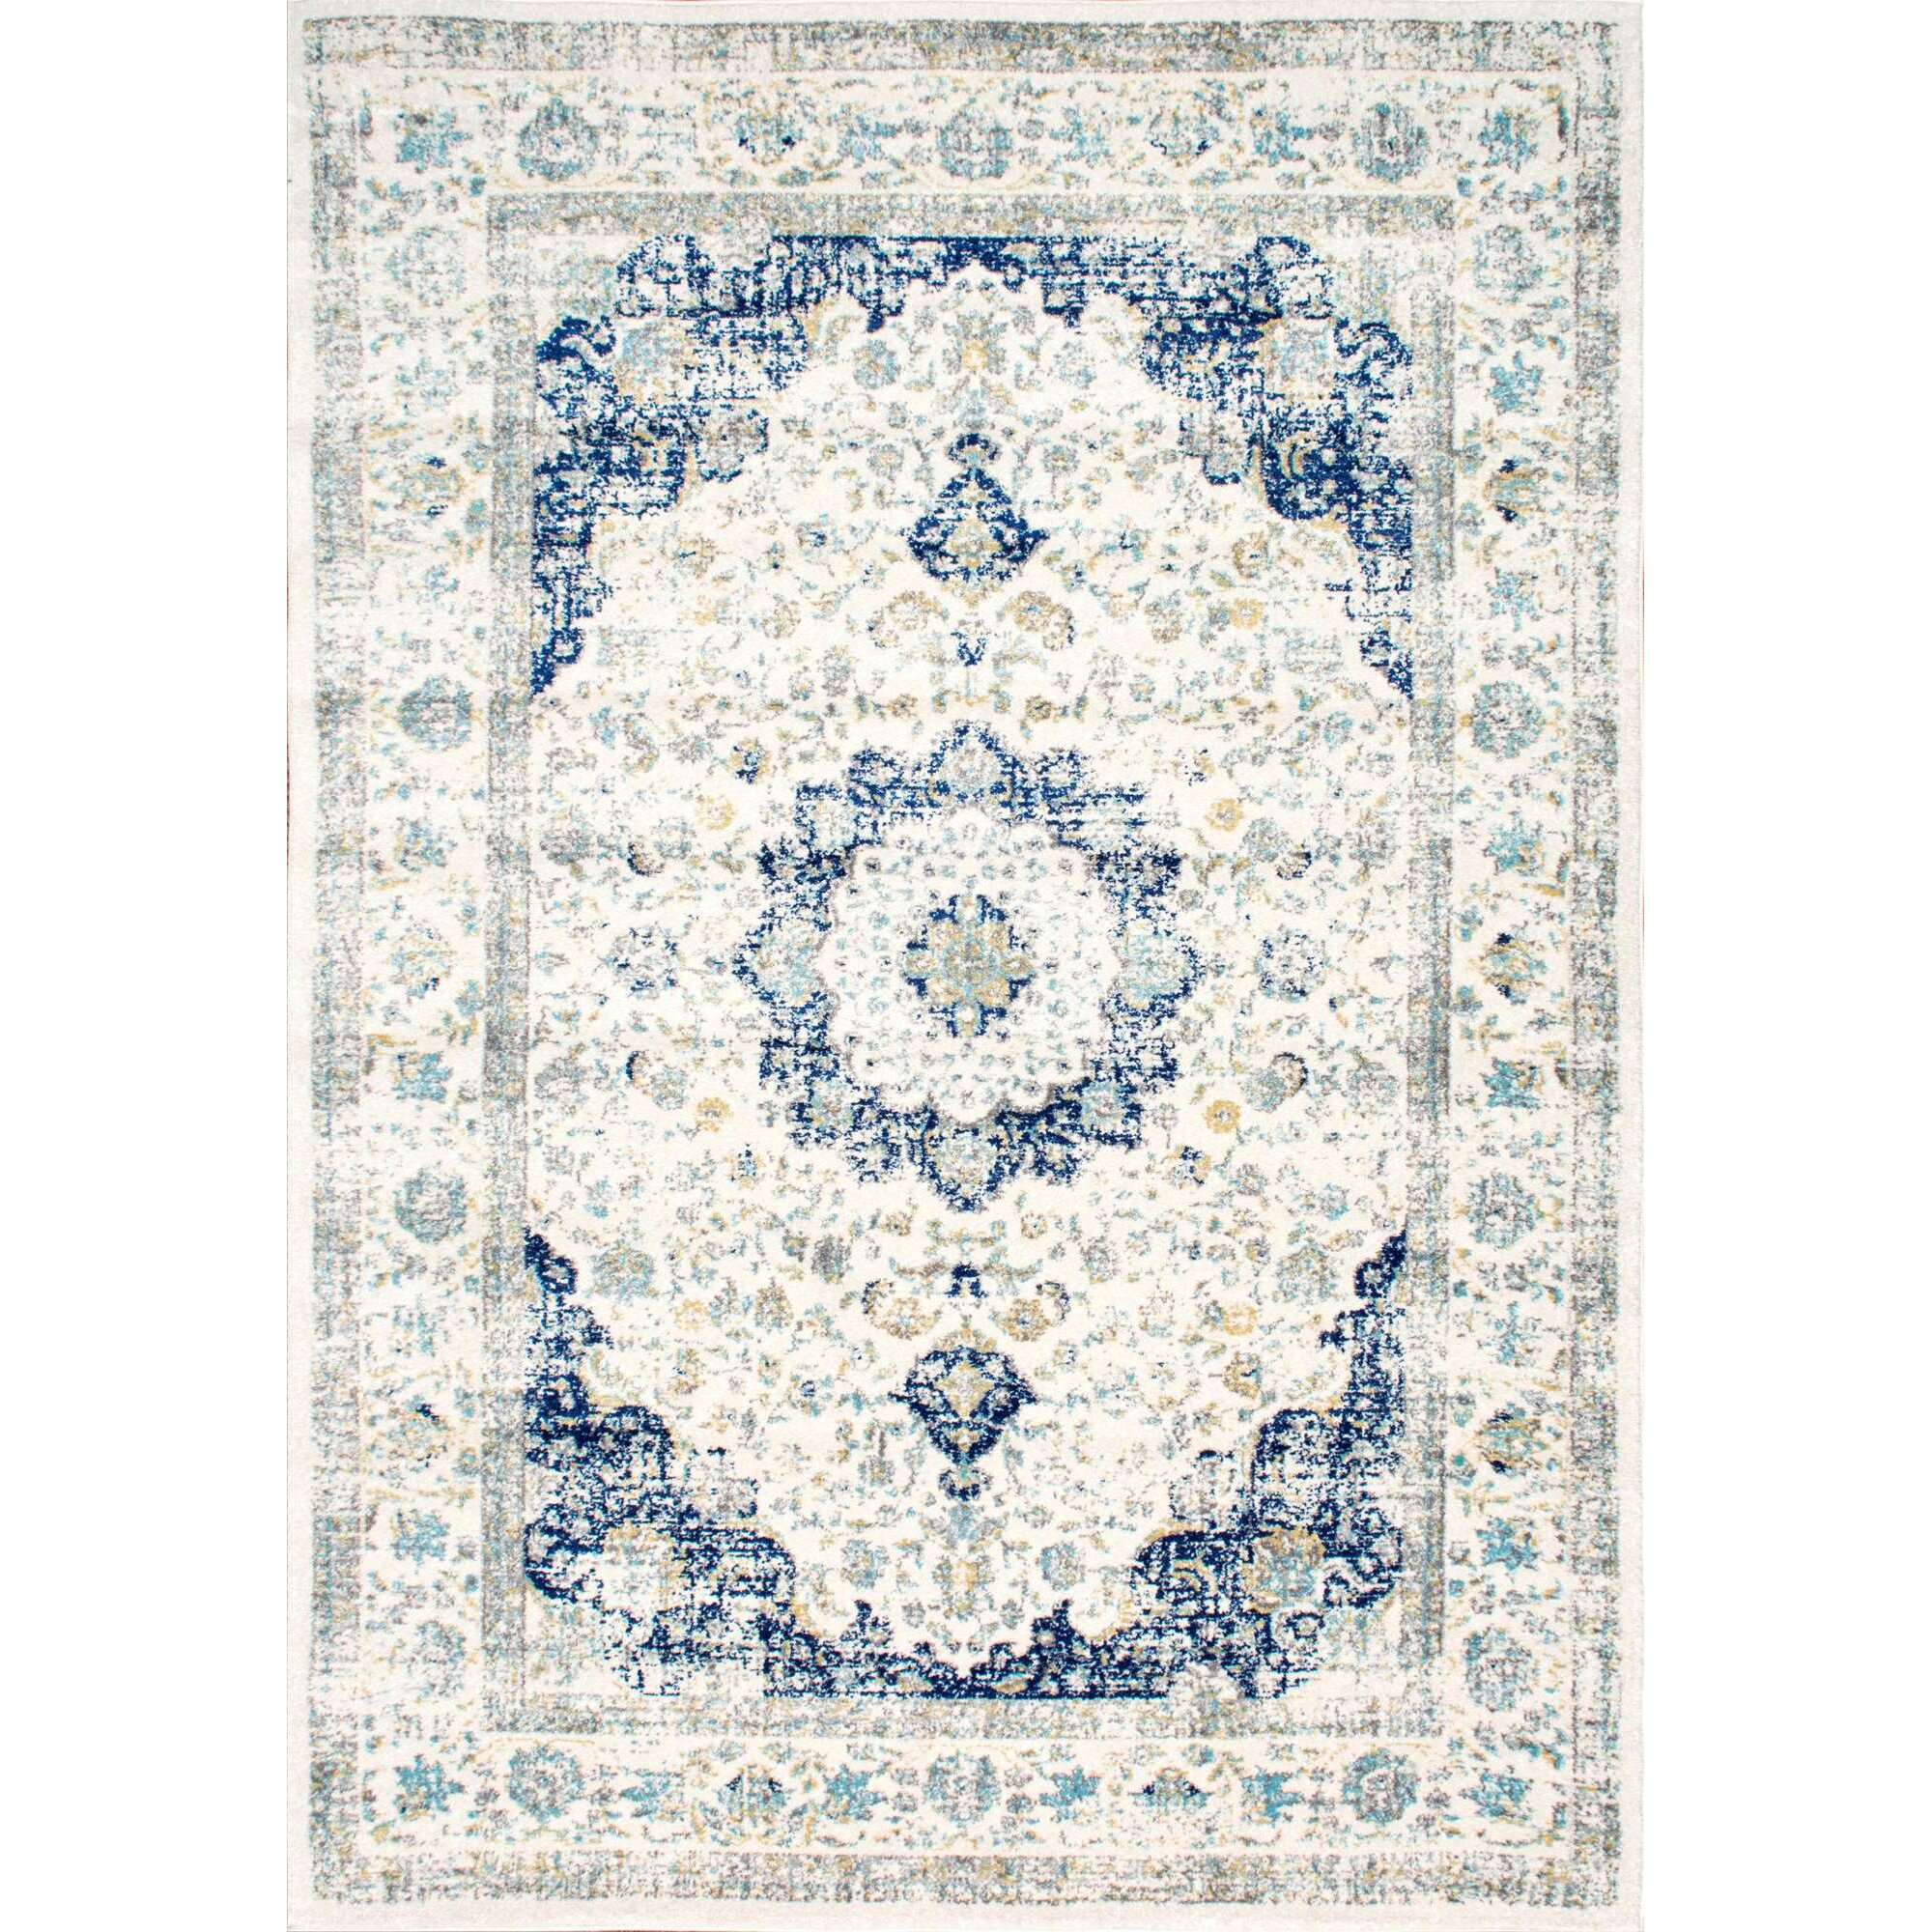 Nuloom verona blue area rug reviews wayfair for Dining room rugs 9x12